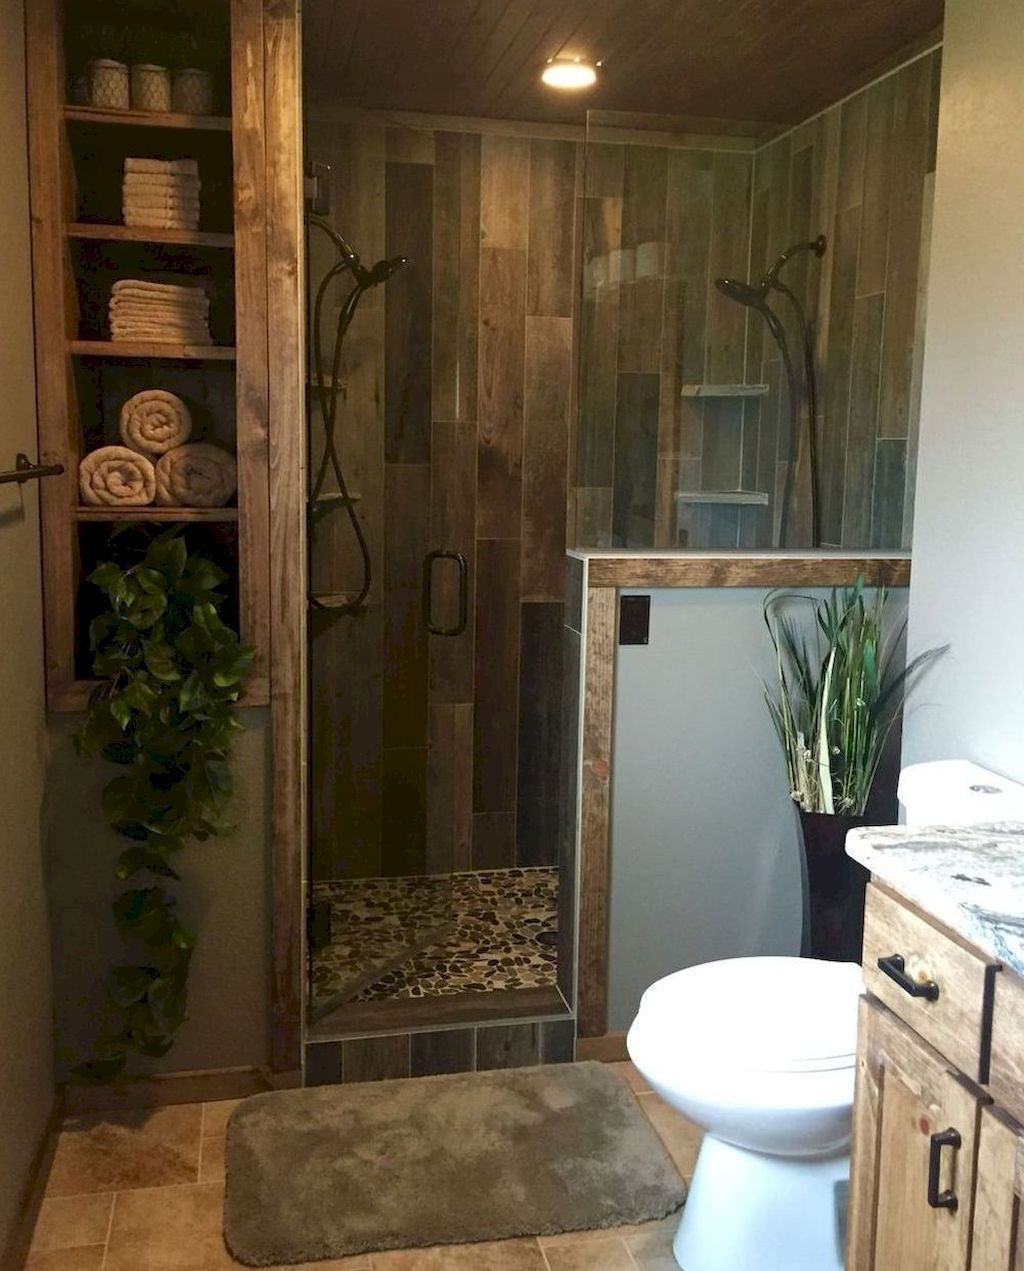 47 Unique Small Bathroom Decor Ideas #rusticbathroomdesigns